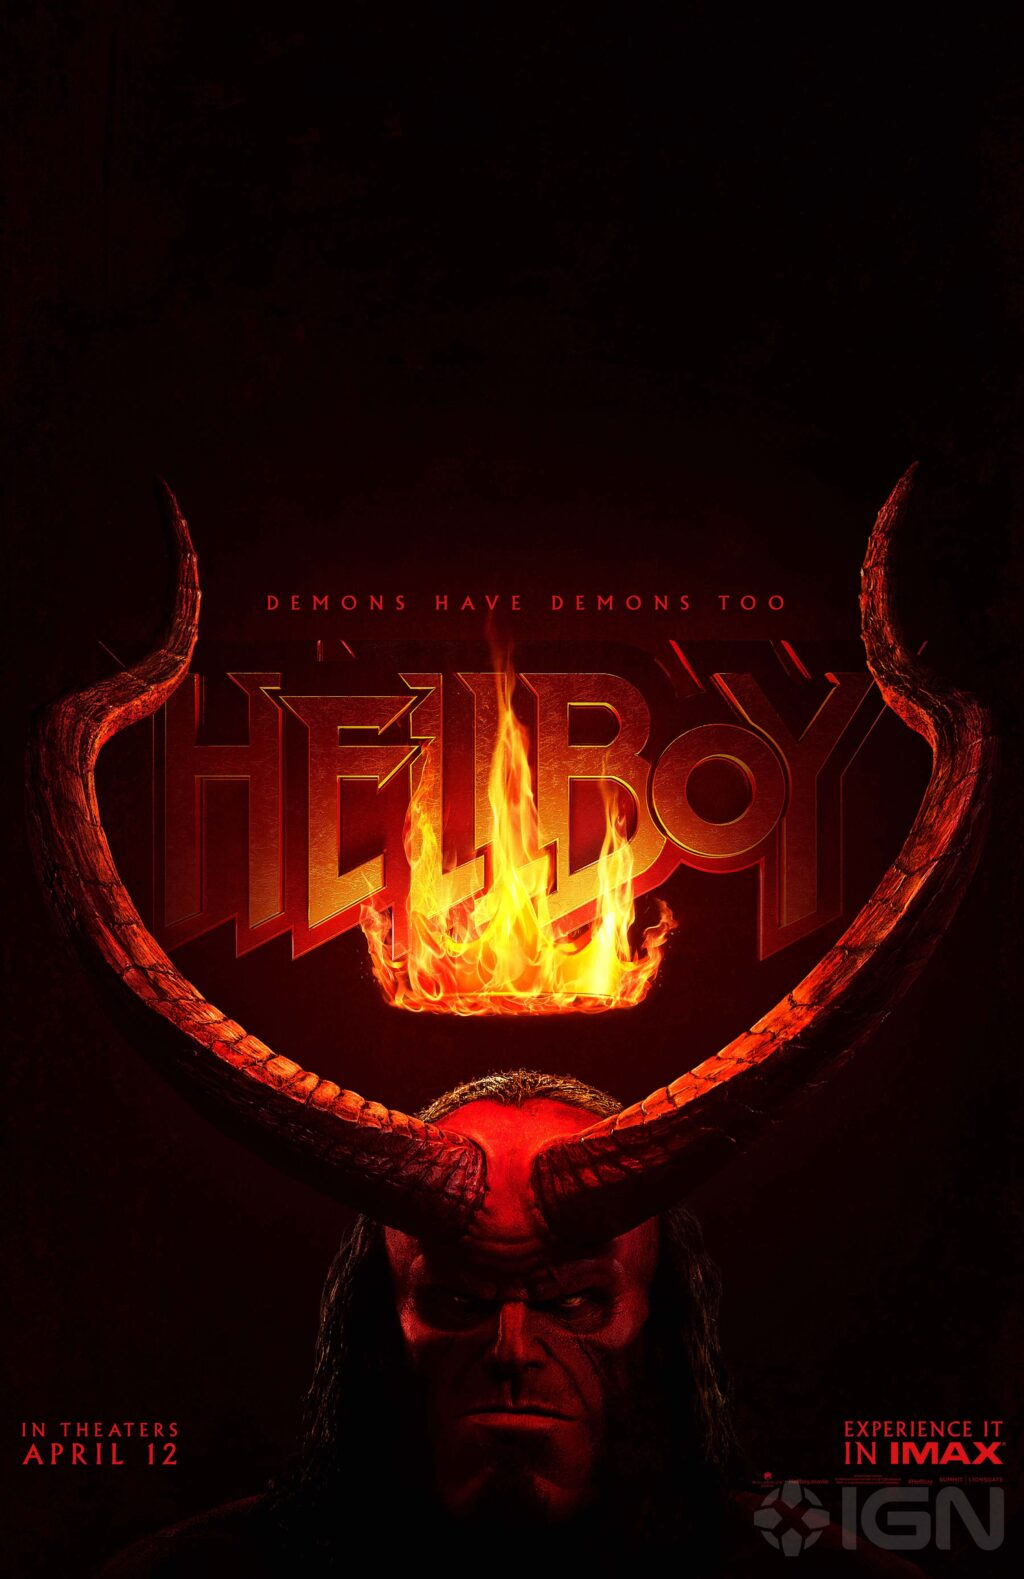 Hellboy 2019 Poster 2 1024x1579 - HELLBOY Shows His Horns in Latest Poster + Trailer Release Date Announced